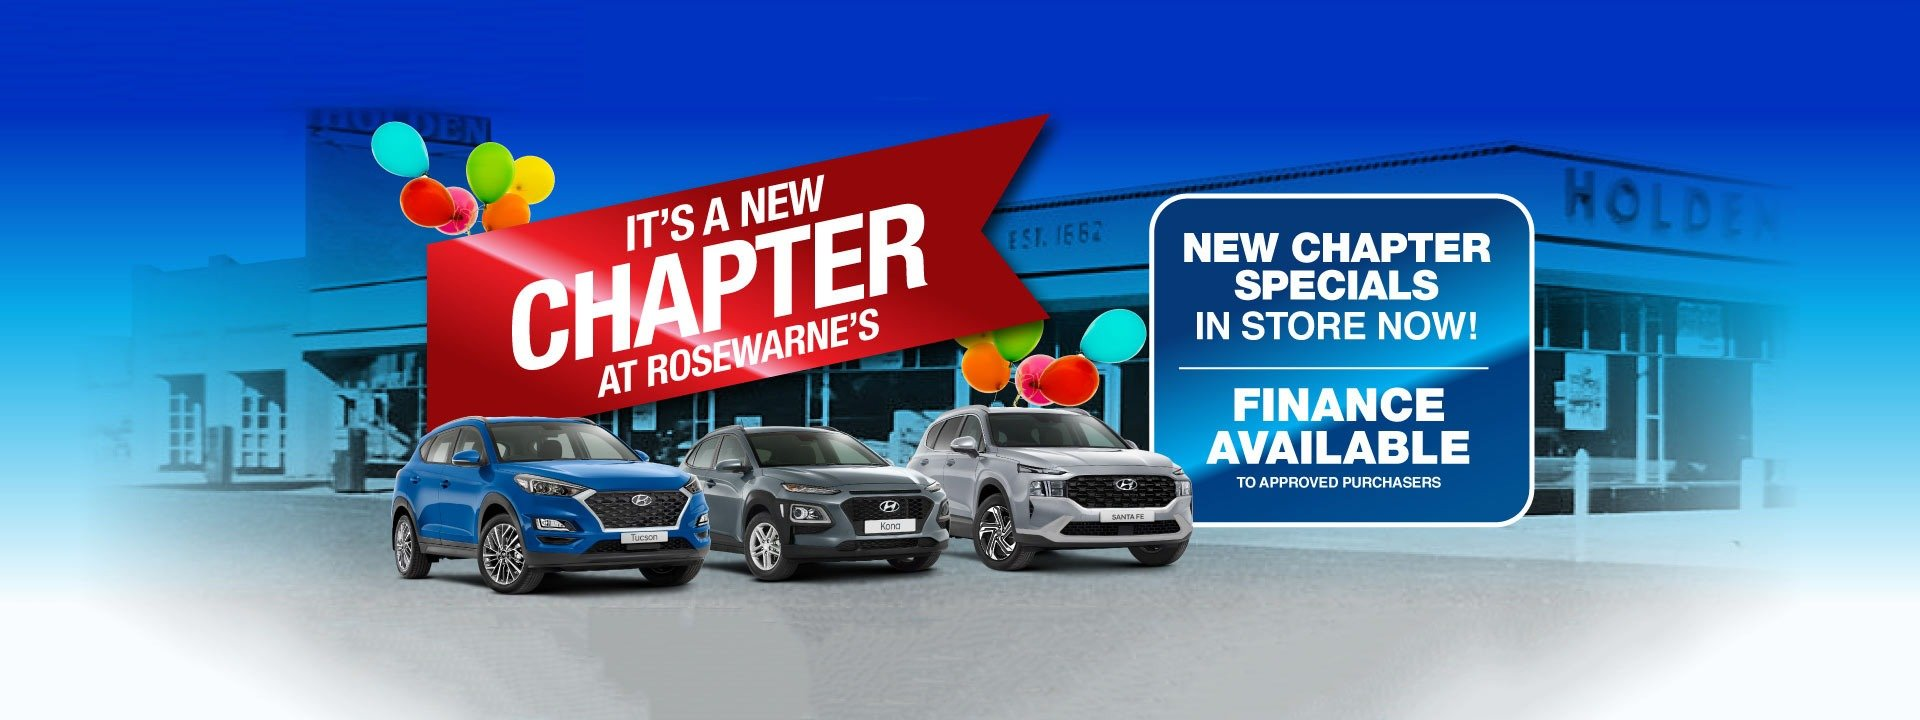 Rosewarne's Hyundai | All New Chapter Special!